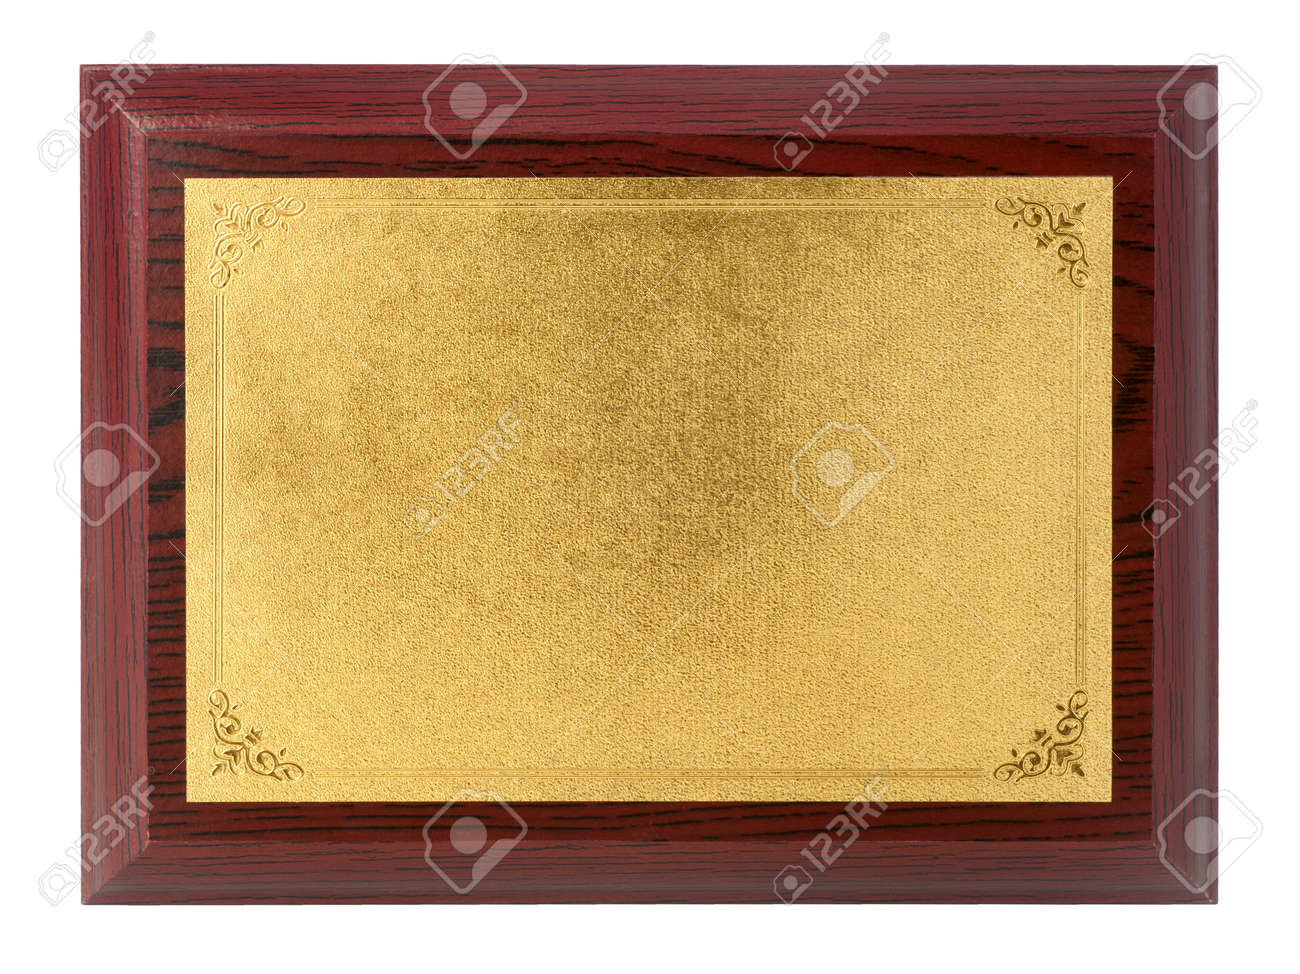 Wood plaque with gold plate isolate on white background - 168244645